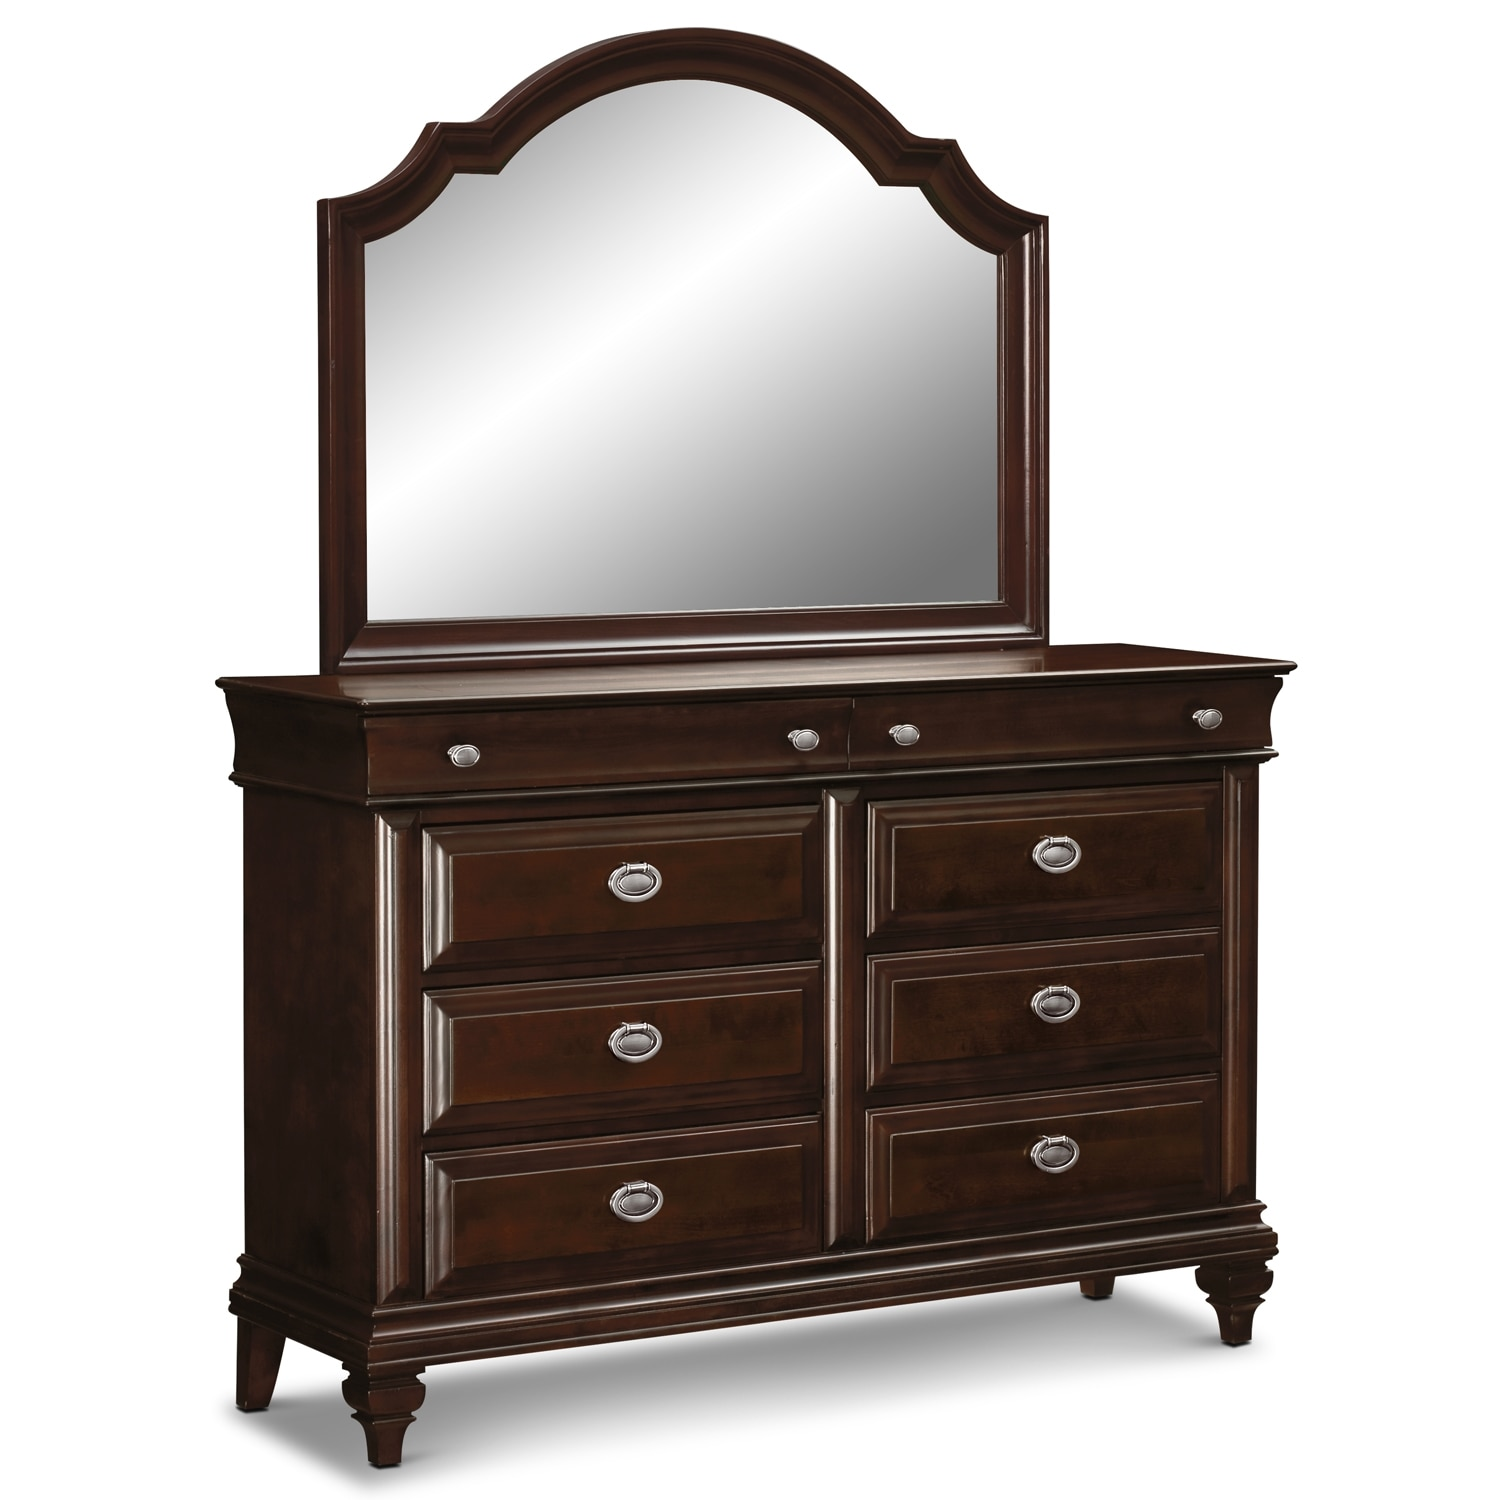 Mirrored Furniture Bedroom: Manhattan Dresser And Mirror - Cherry